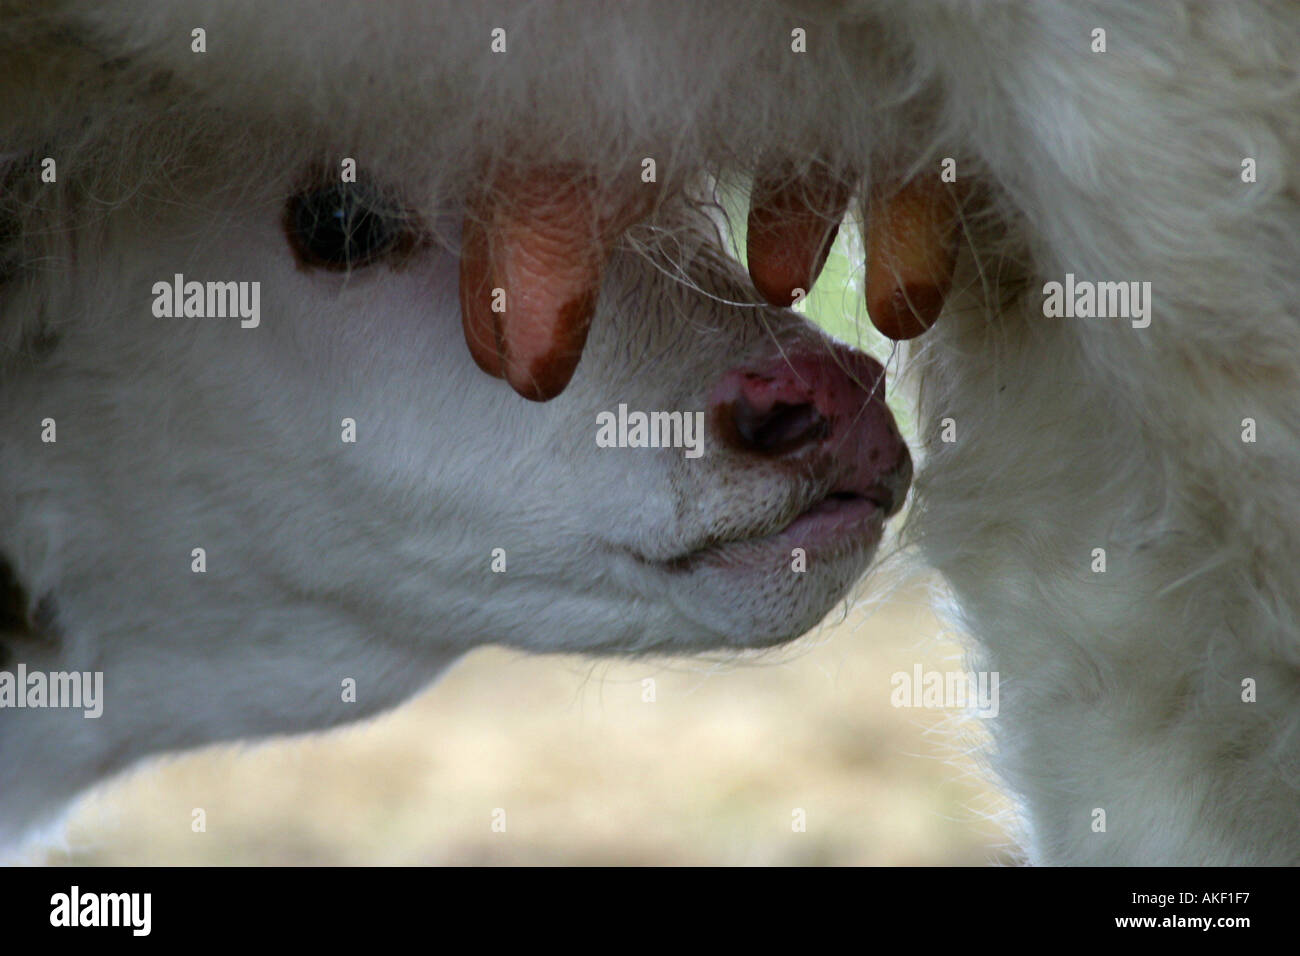 calf under cows udders - Stock Image